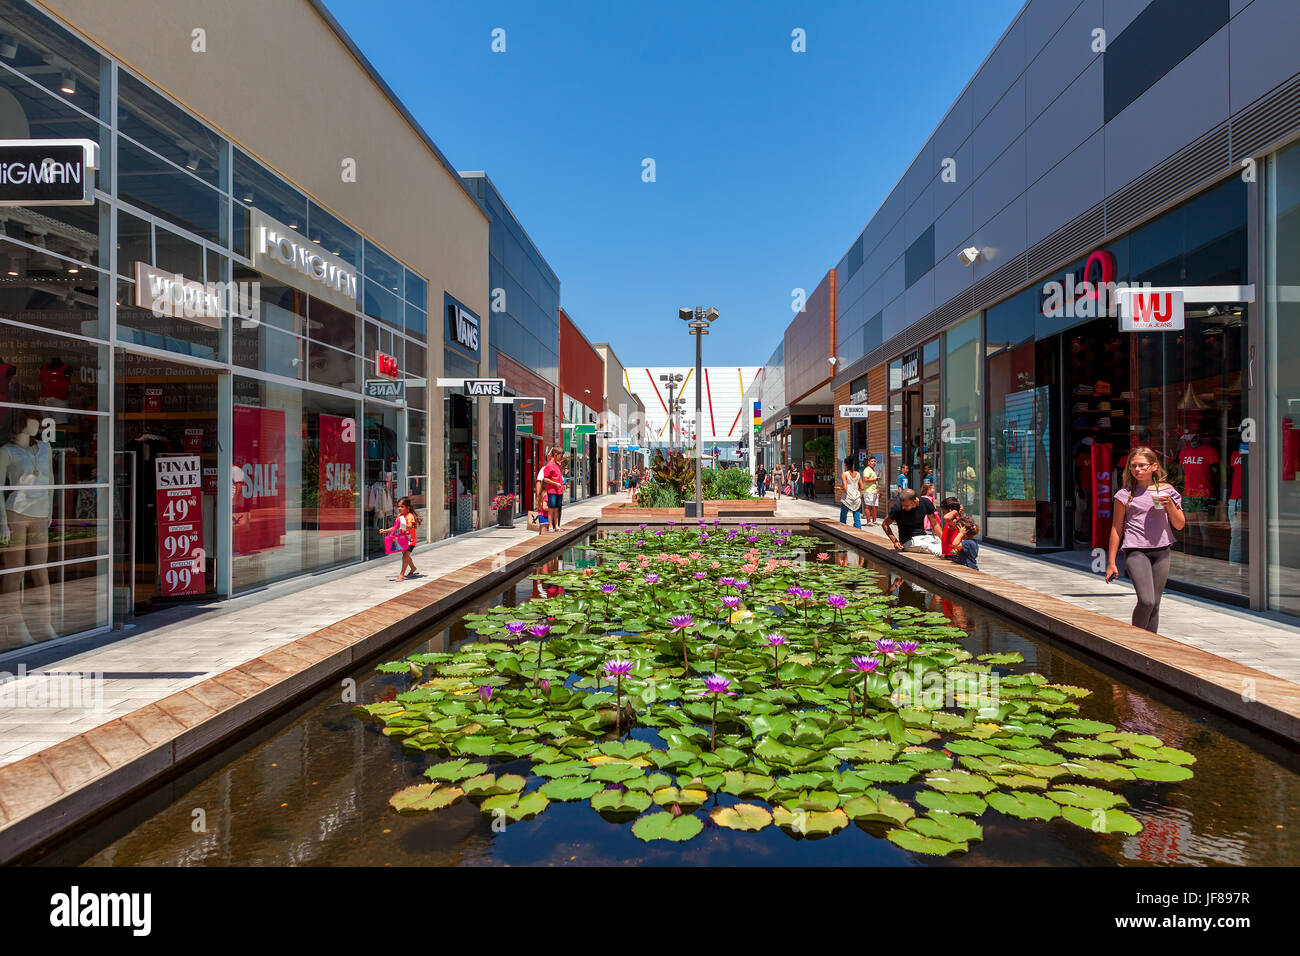 ASHDOD, ISRAEL - JULY 24, 2015: Artificial pond with flowers among shops, boutiques and contemorary stores in openair - Stock Image